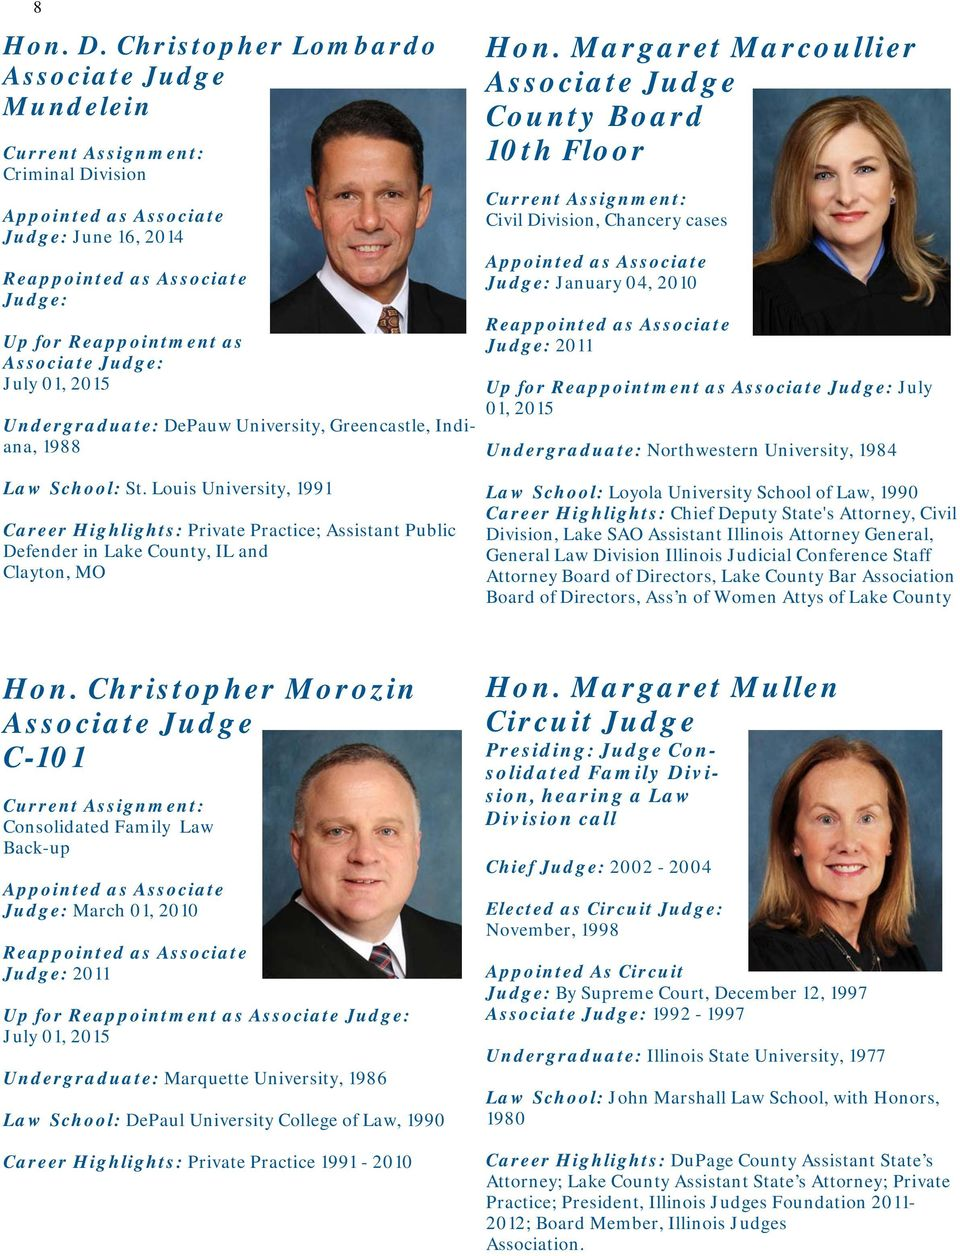 19th Judicial Circuit Court Profile Book Pdf Missouri Judges 2010 General Election November 2nd Louis University 1991 Career Highlights Private Practice Assistant Public Defender In Lake County